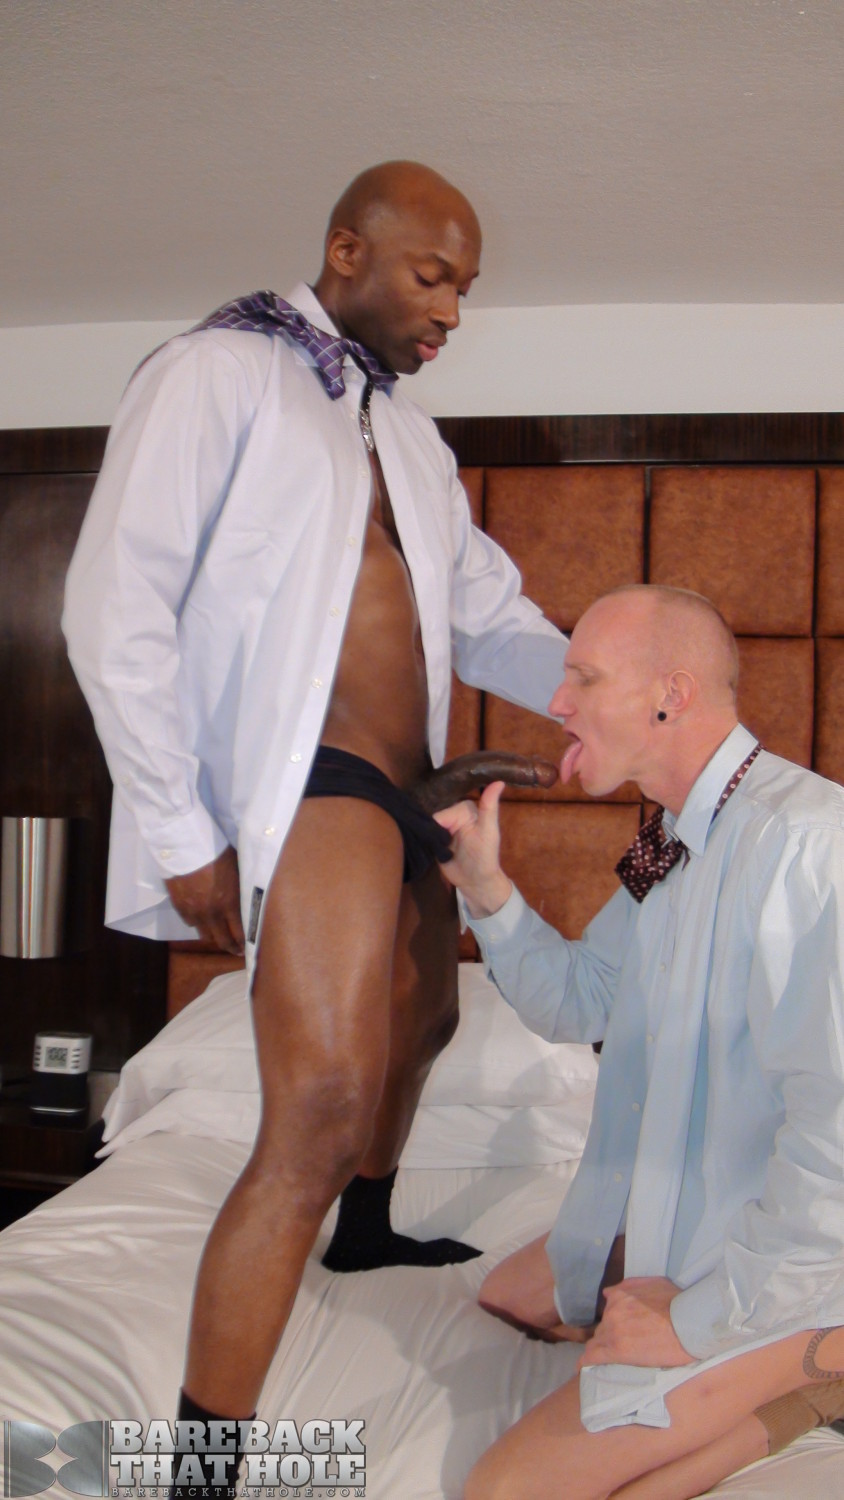 Bareback-That-Hole-Champ-Robinson-and-Mason-Garet-Interracial-Big-Black-Cock-Bareback-Amateur-Gay-Porn-09 Black Corporate Executive Barebacks His White Co-Worker